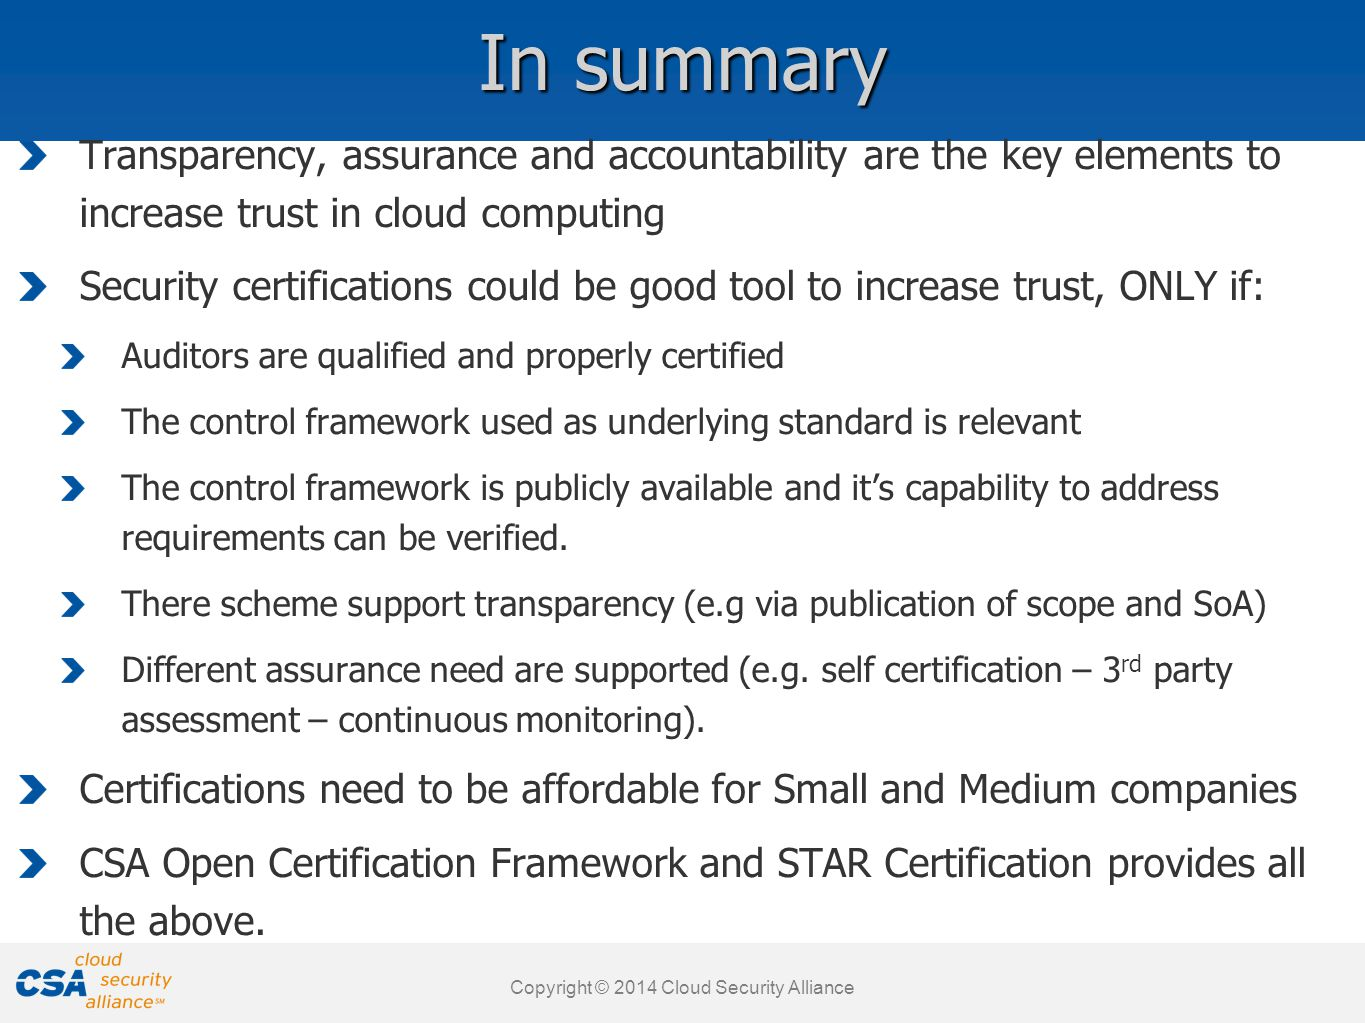 Copyright © 2012 BSI. All rights reserved. www.cloudsecurityalliance.org Copyright © 2011 Cloud Security Alliance In summary Transparency, assurance a